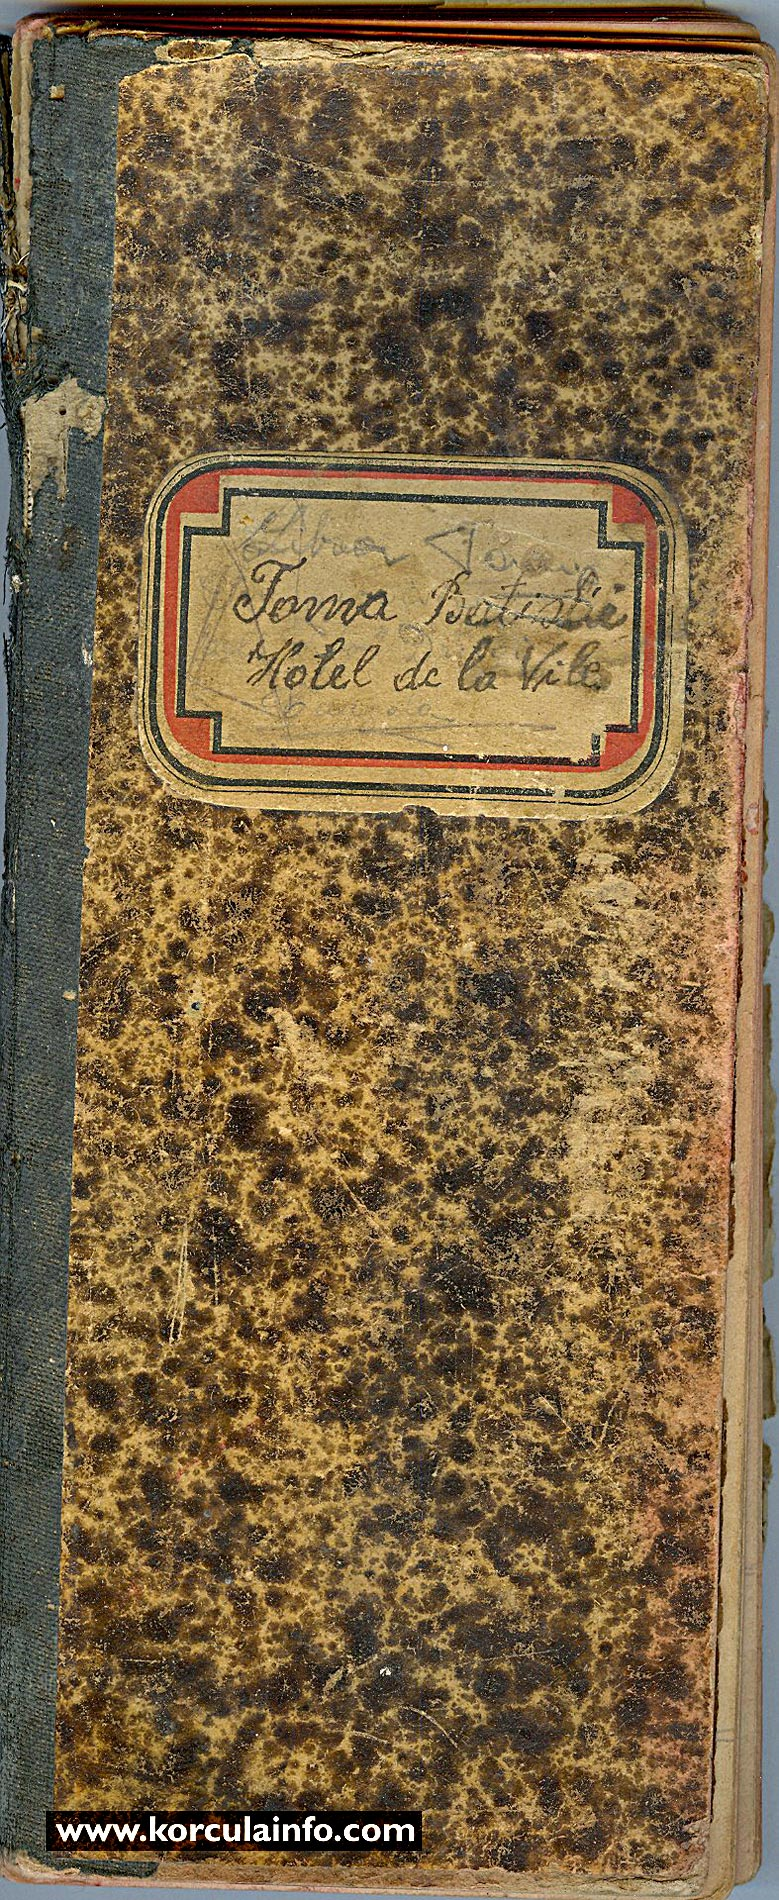 Hotel Korcula Daybook from 1930s